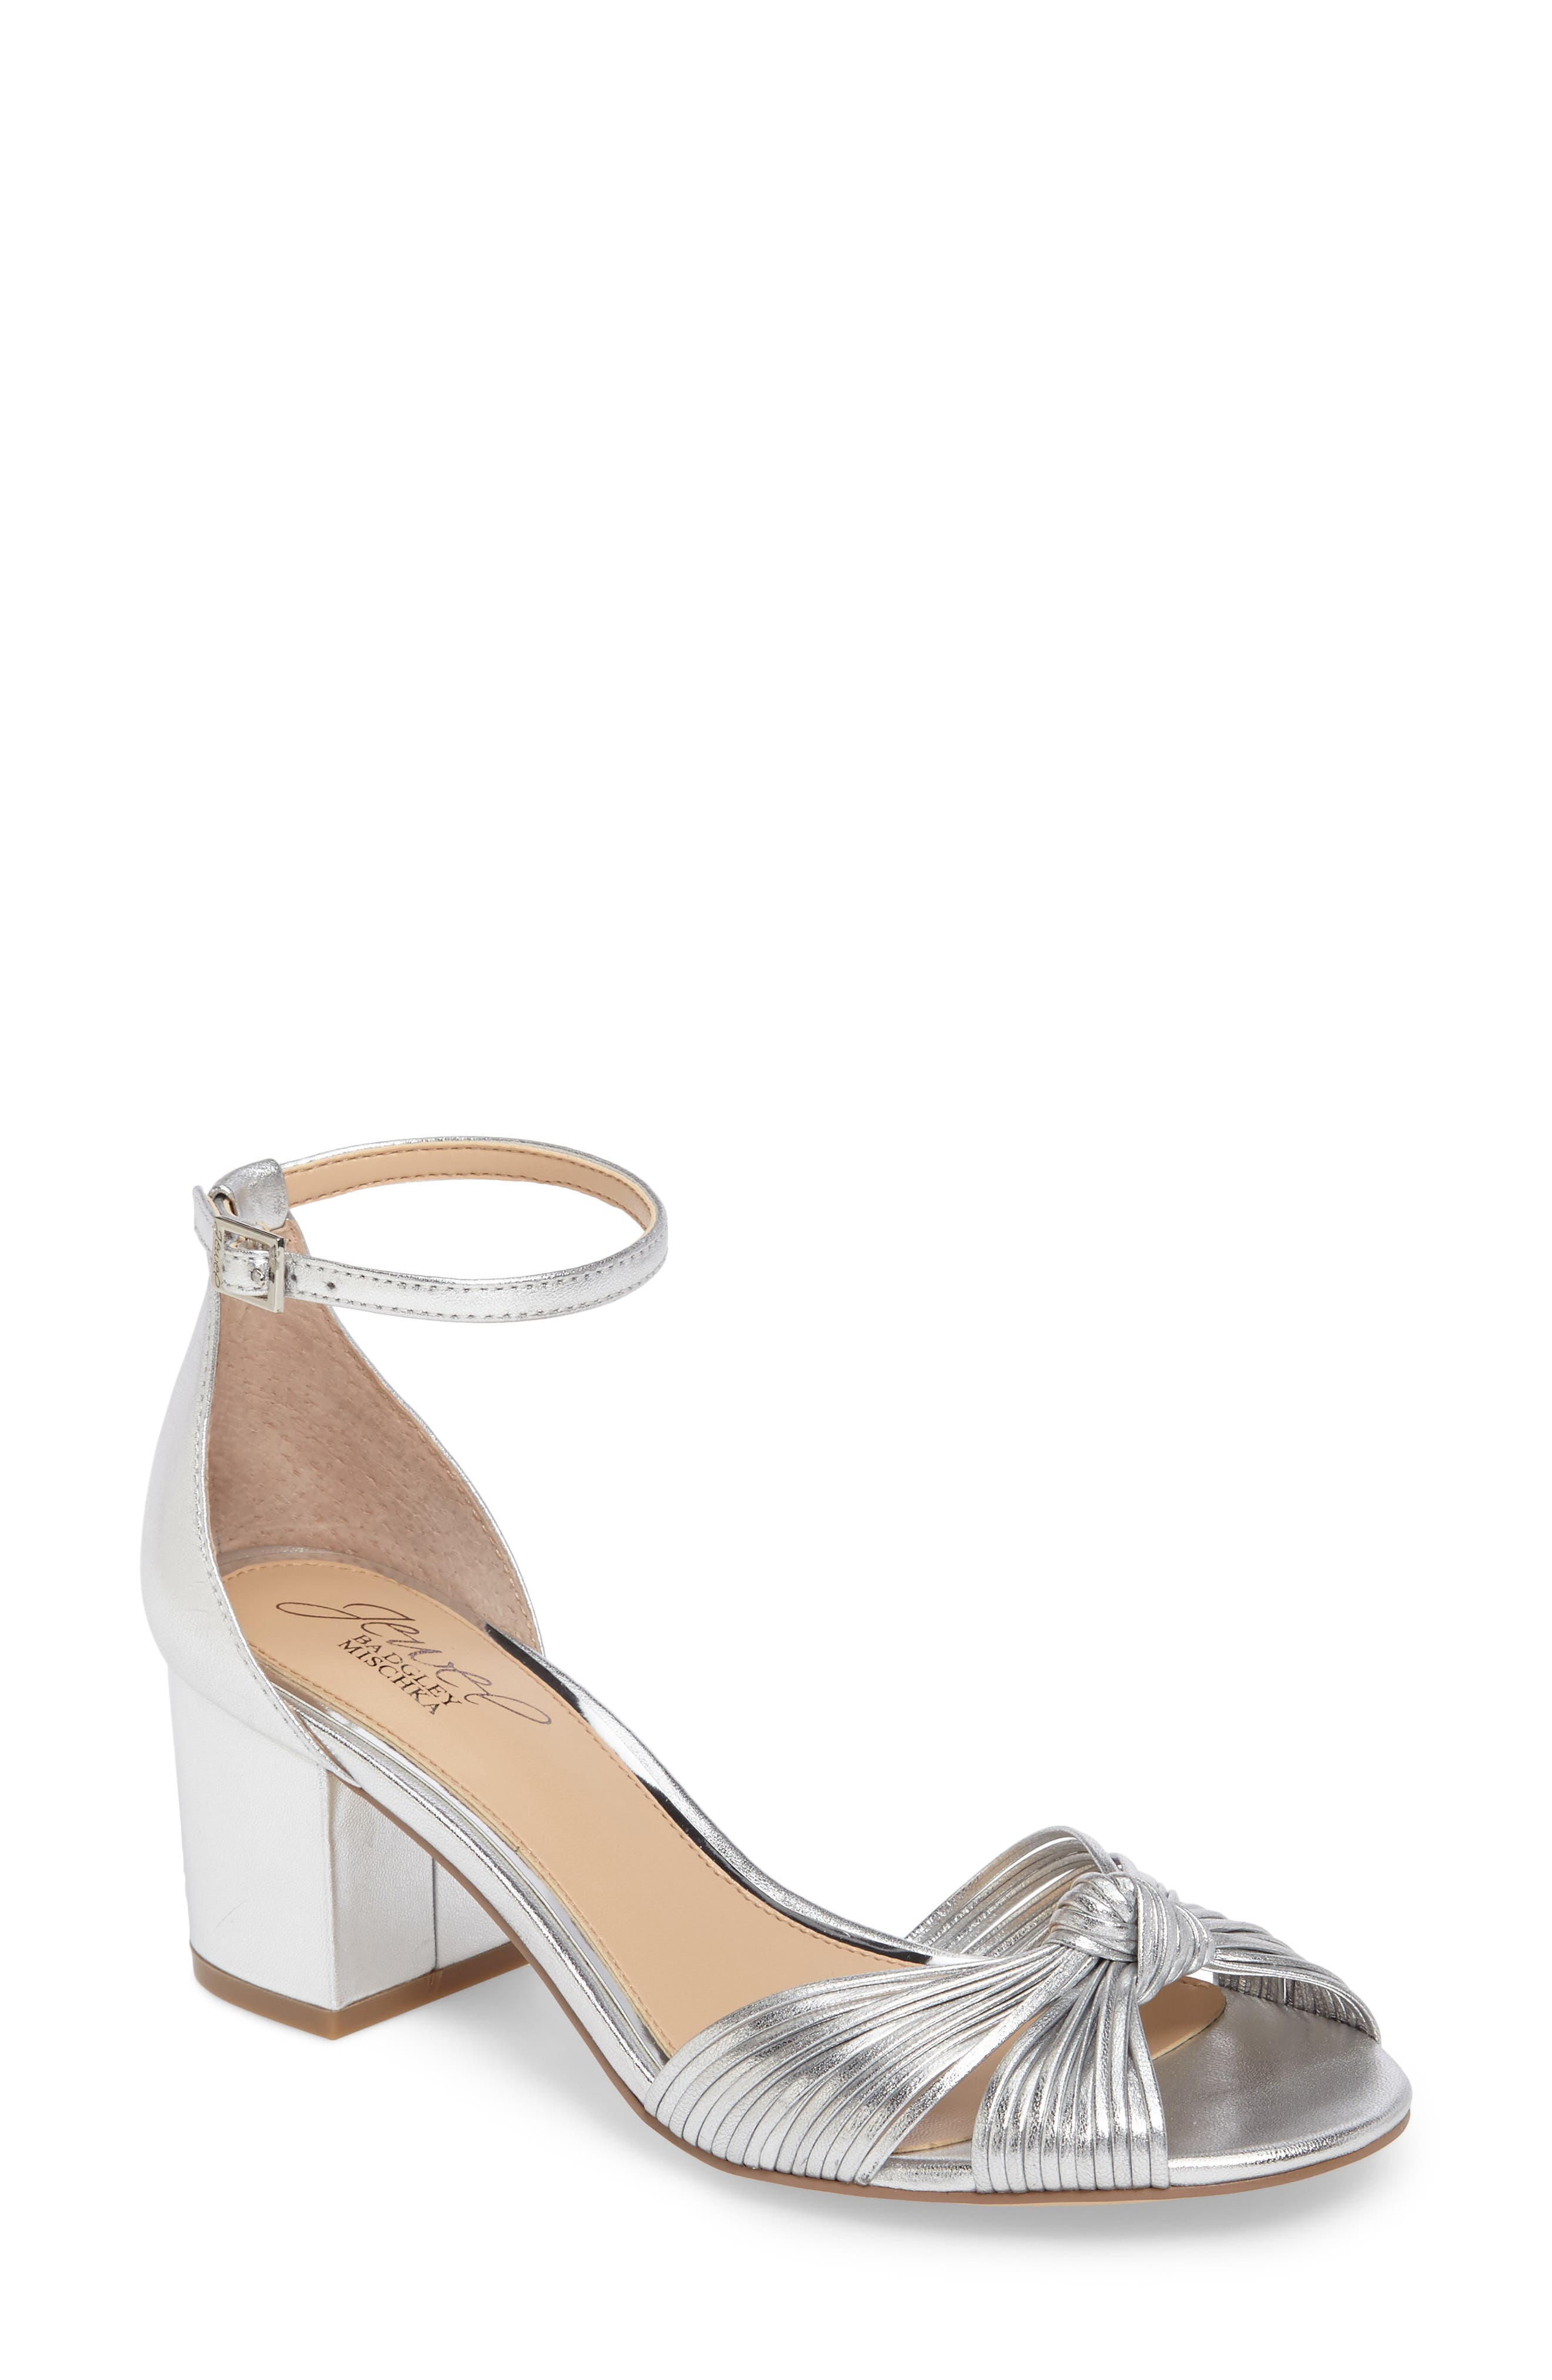 Alternate Image 1 Selected - Jewel Badgley Mischka Lacey Ankle Strap Pump (Women)